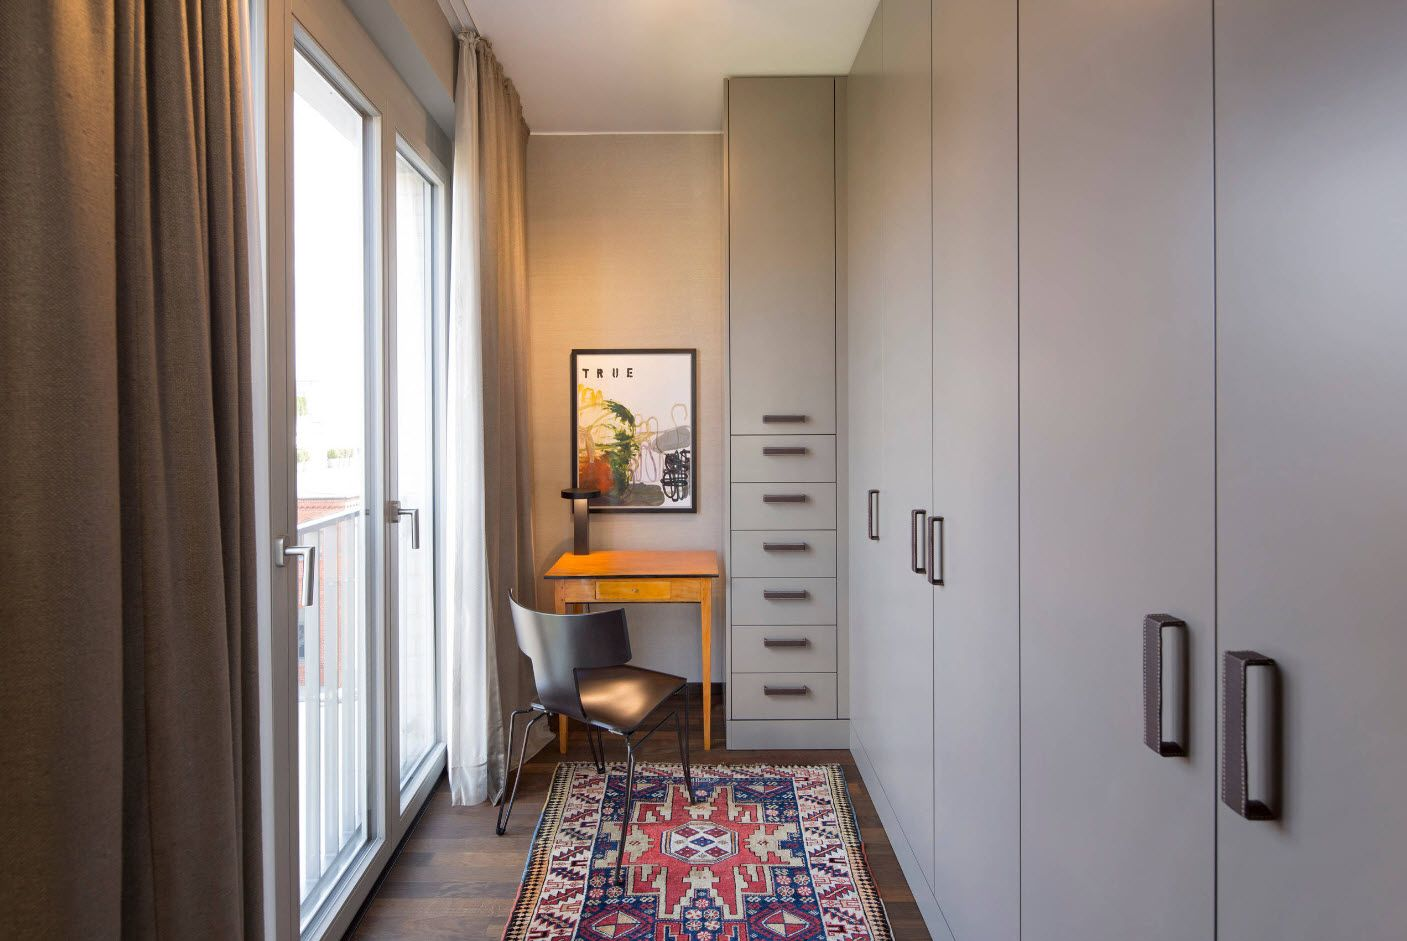 Top 100 Modern Home Office Design Trends 2017. White pastel colored interior trimming with working space at the balcony entrance